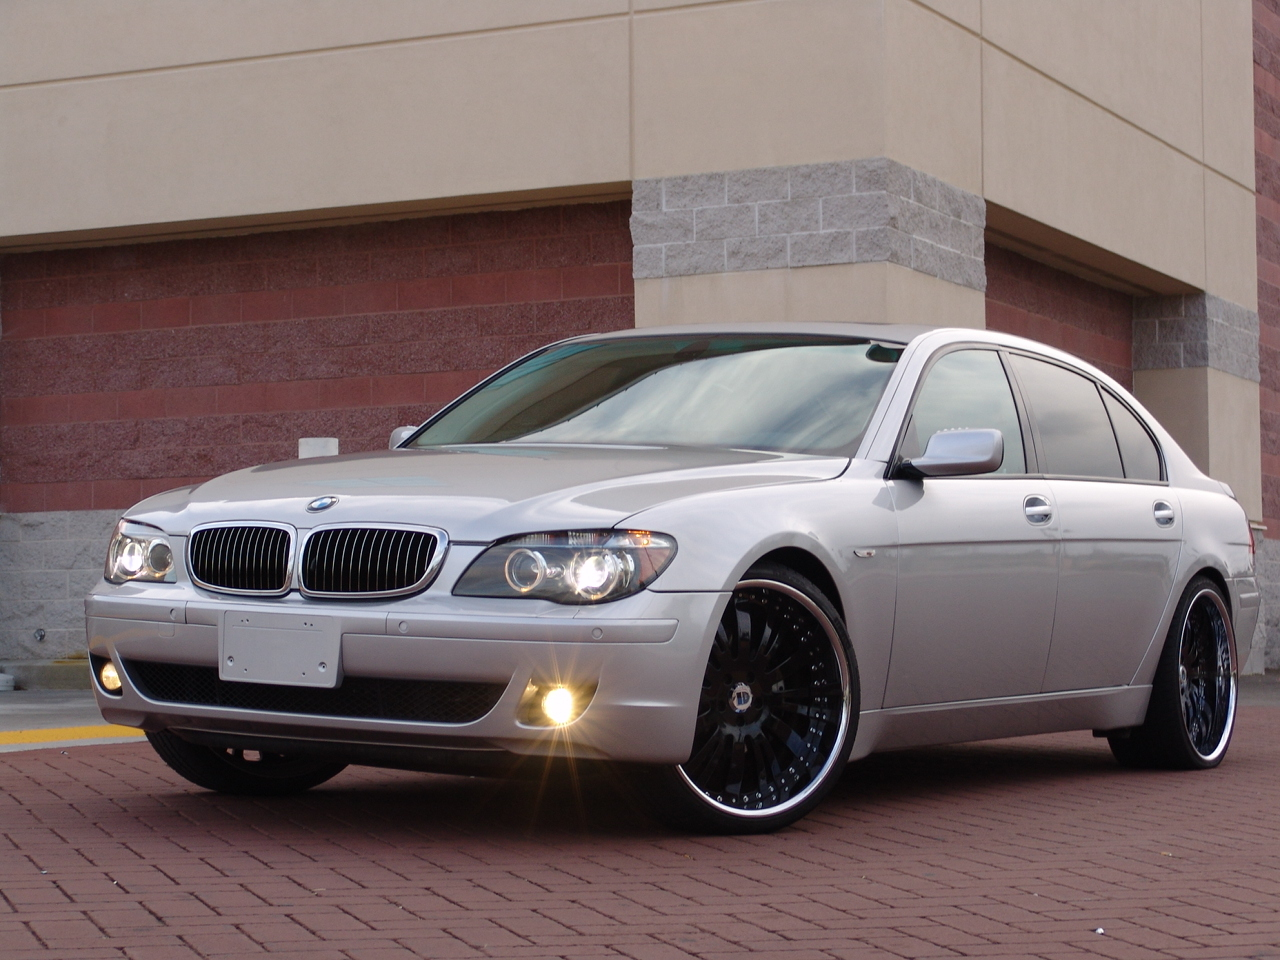 2008 BMW 7-Series | car review @ Top Speed